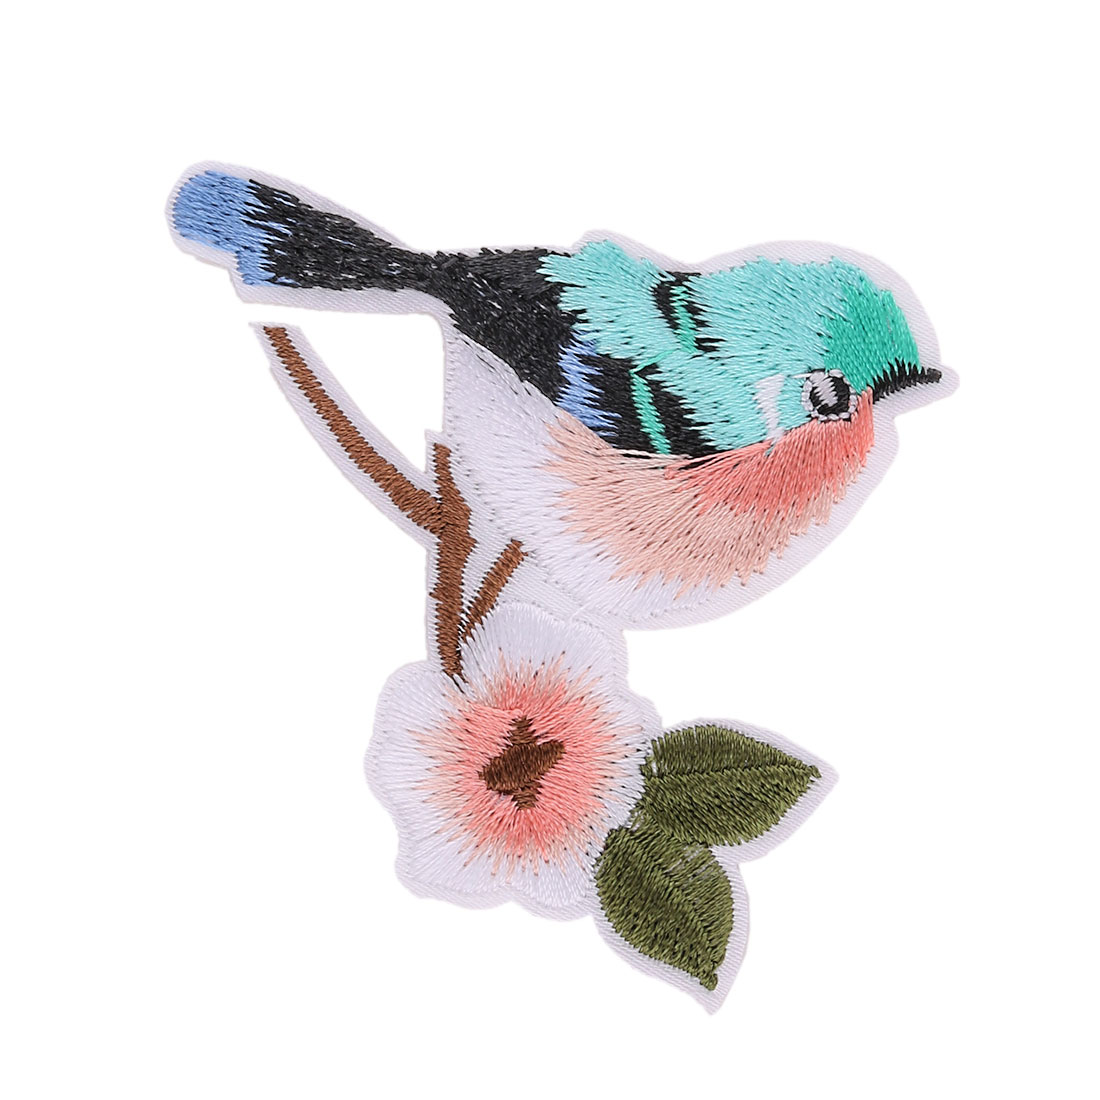 Unique Bargains Family Polyester Bird Pattern Embroidery DIY Coat Dress Decor Lace Applique